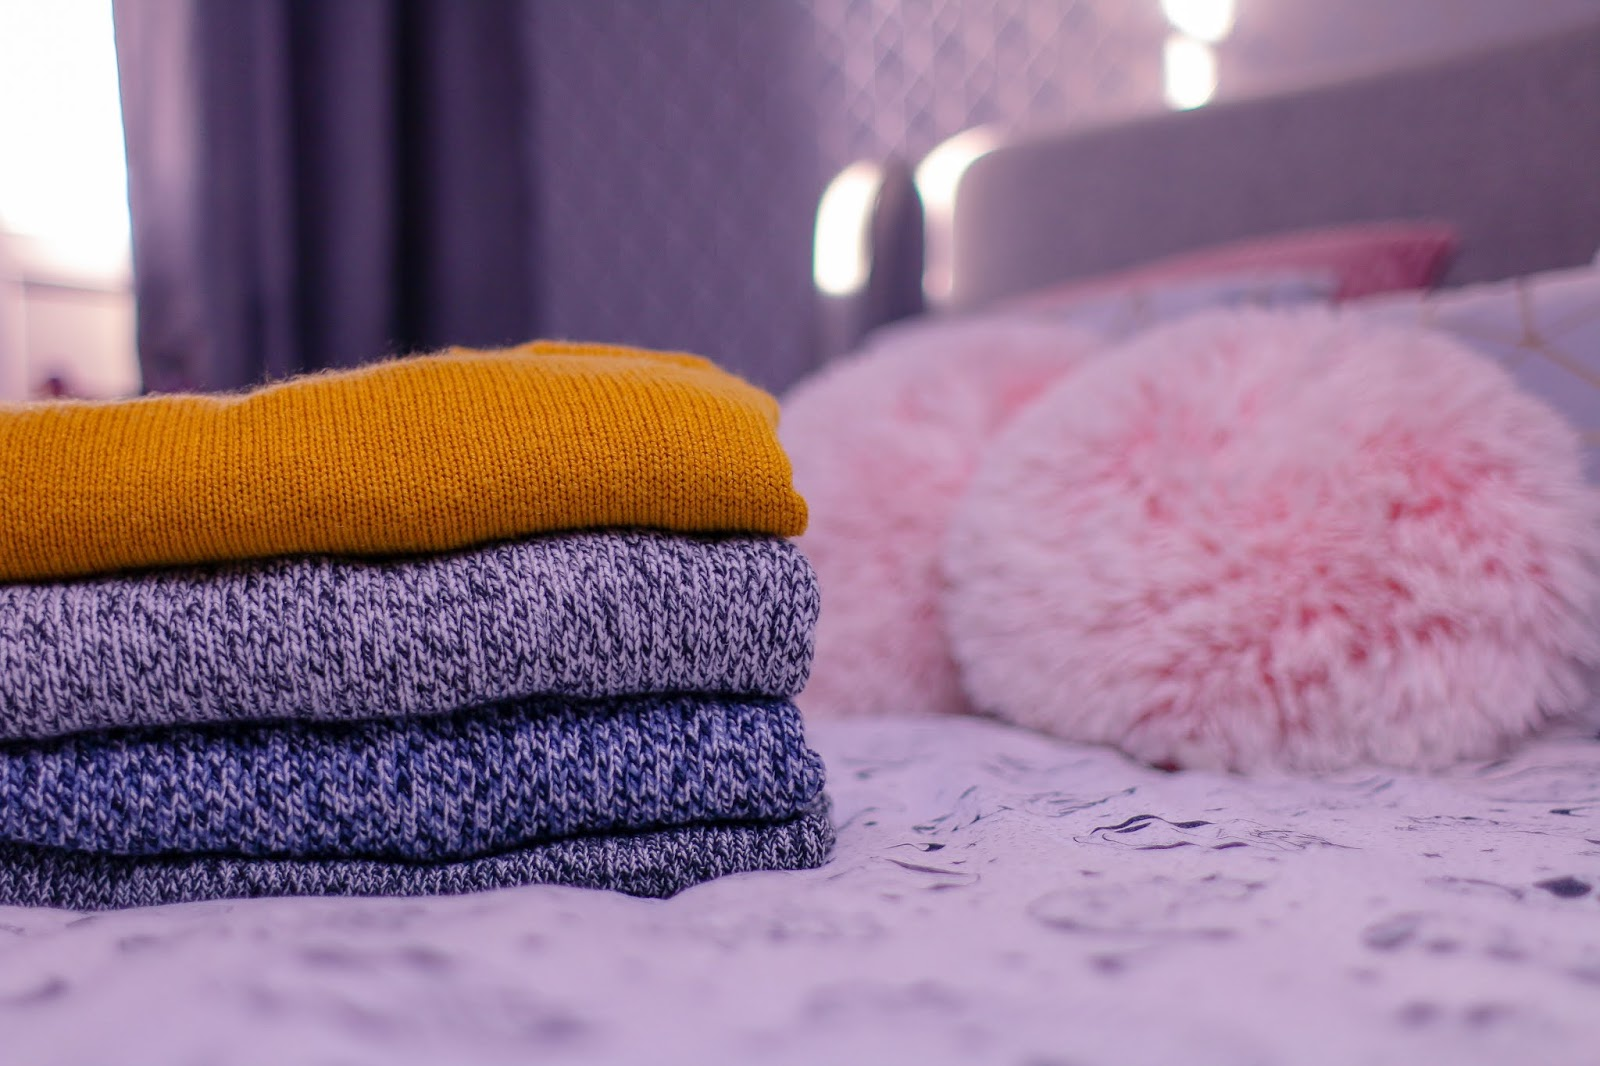 Close up photo of 4 jumpers folded sitting on a bed with pink bedding. There are grey curtains in the background with pink pillows out of focus to the right of the photo. The 4 jumpers are mustard, grey and black, blue and black, dark grey and white.